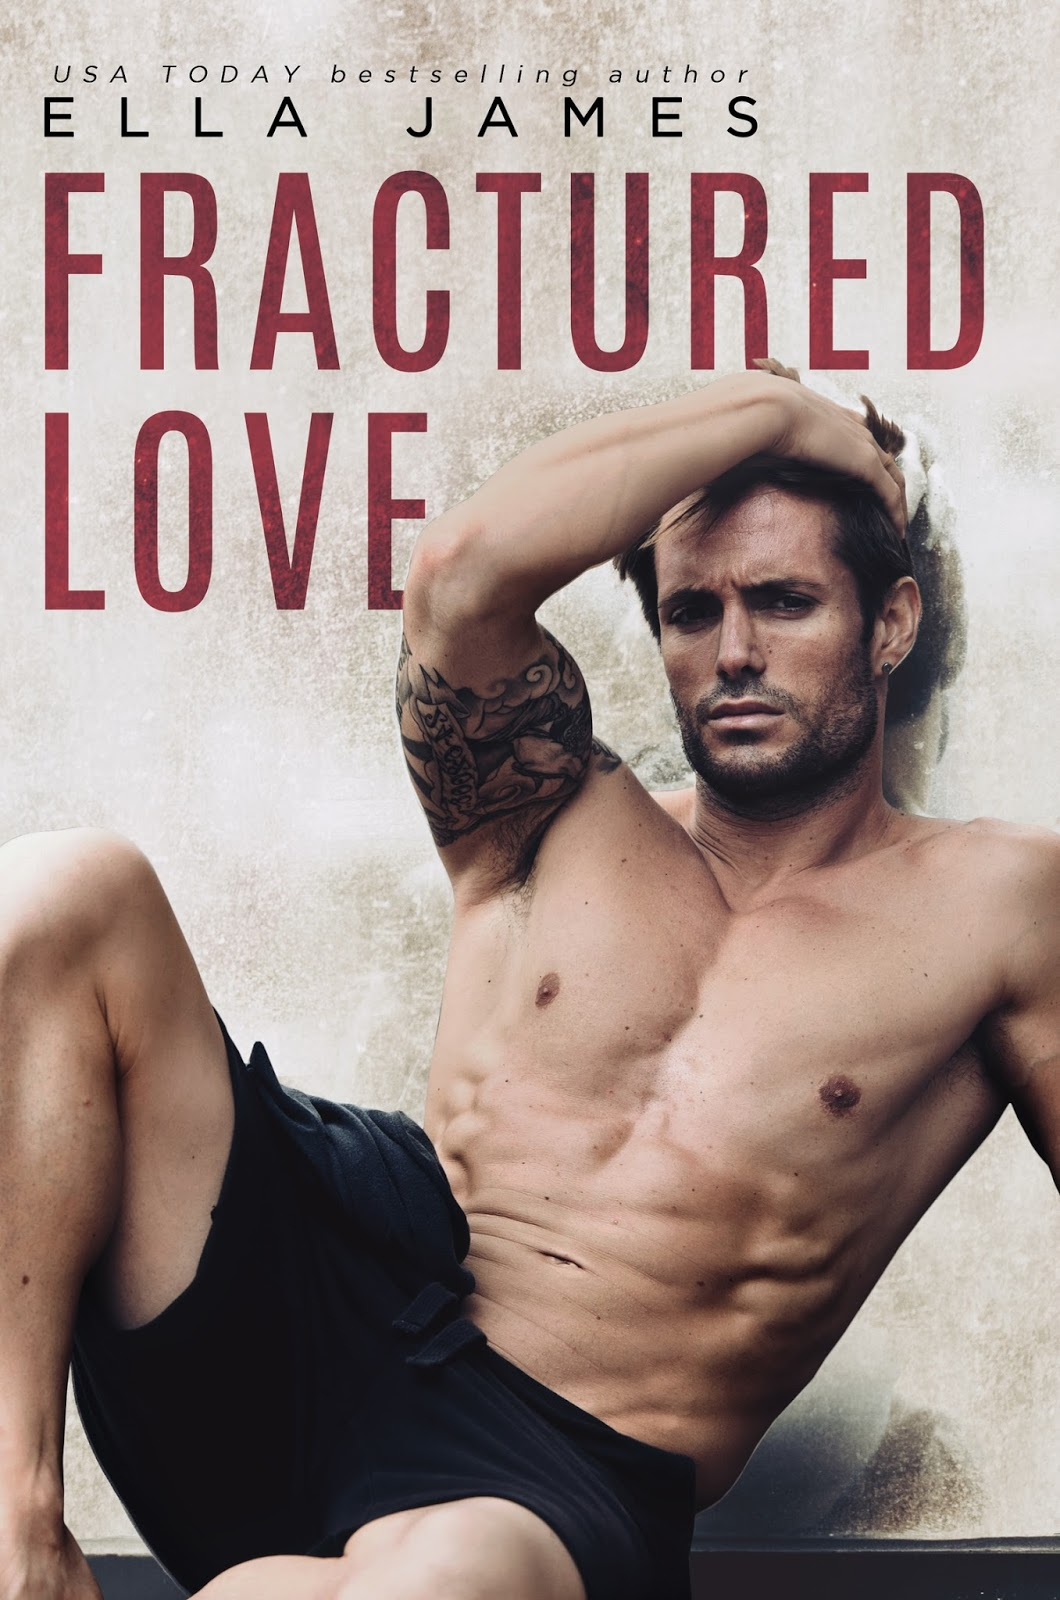 Title: Fractured Love An Offlimits Romance Standalone